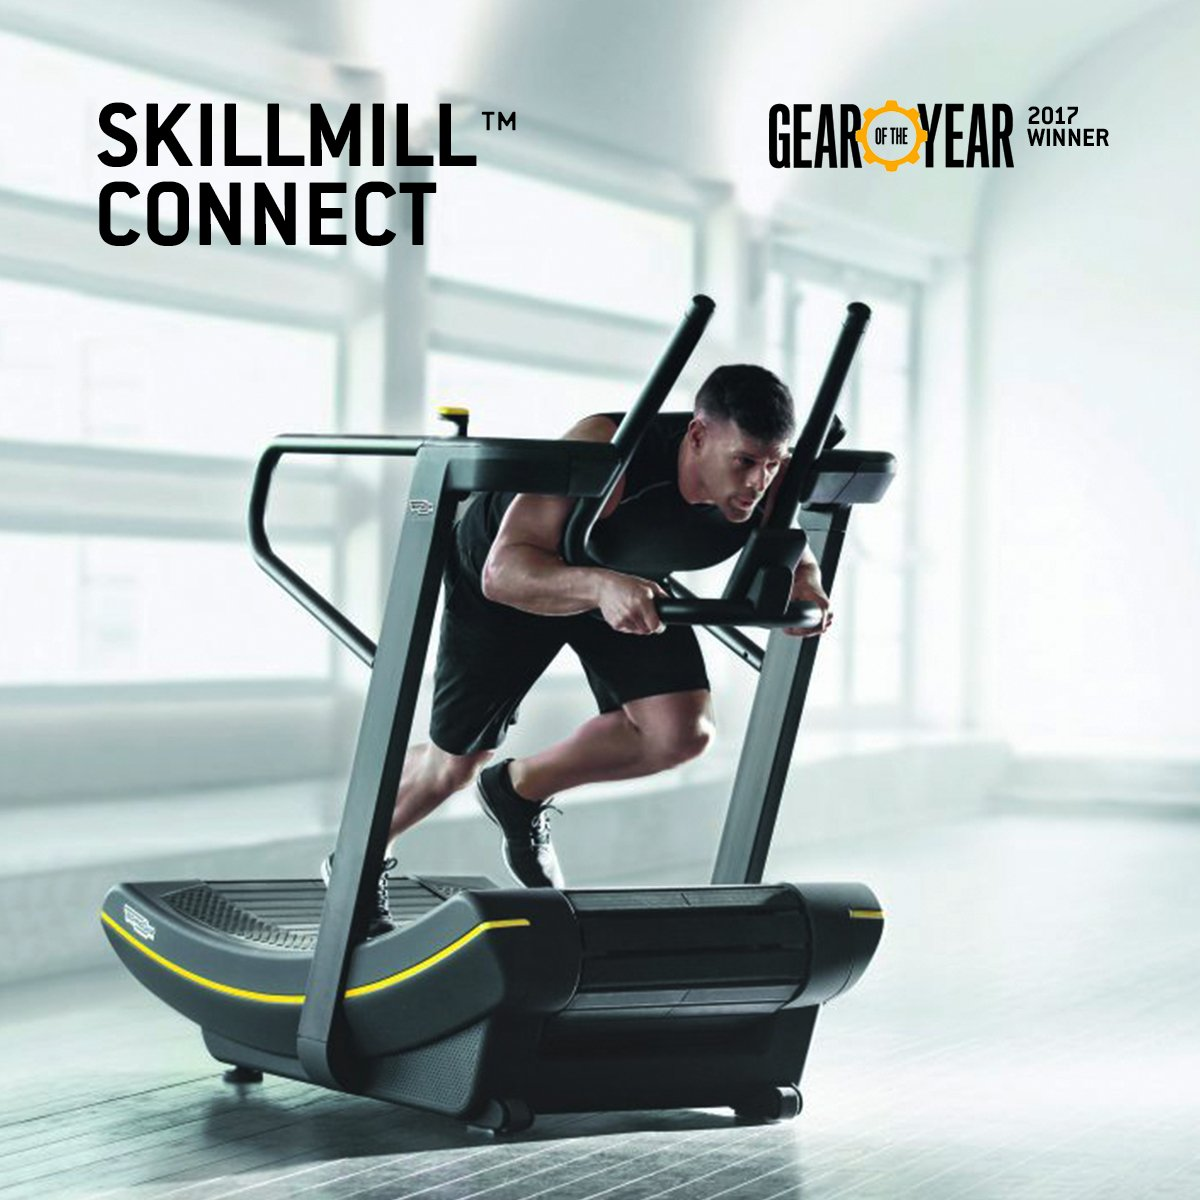 Technogym Skillmill Connect Is Nominated 2017 Runners World Gear Of The Year Https Goo Gl Gqwm4j Runnersworld Gearoftheyear